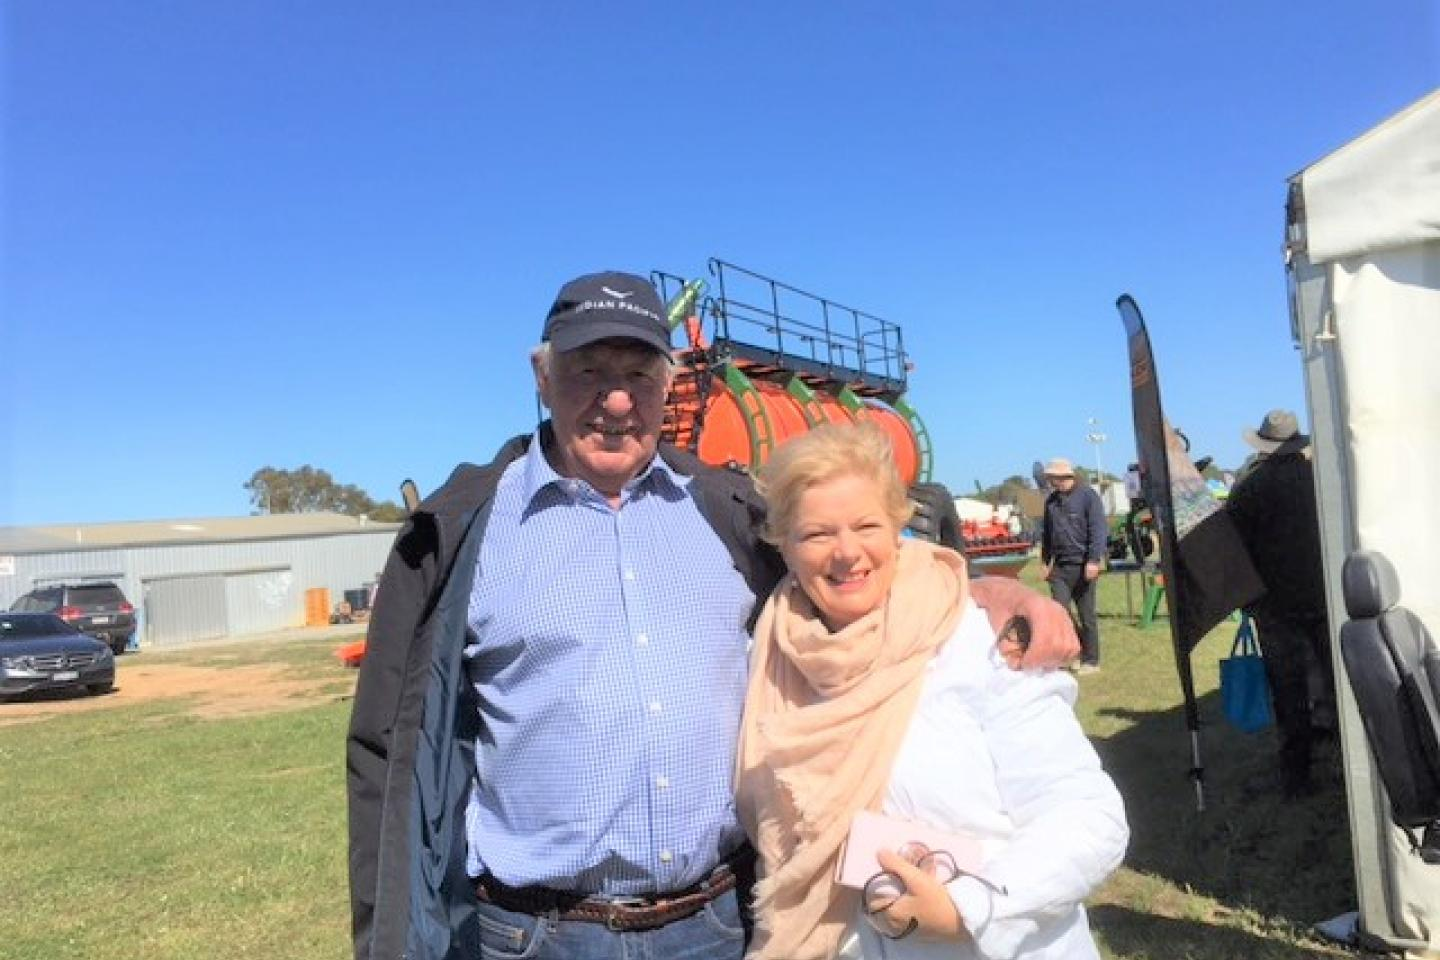 Retired New Norcia farmer and DBS owner Ian Wright made a bee-line for Ausplow's display after a one hour wait at the entrance gate as crowds flocked in to the event. He's pictured here with Ausplow's Bernadette Turner.